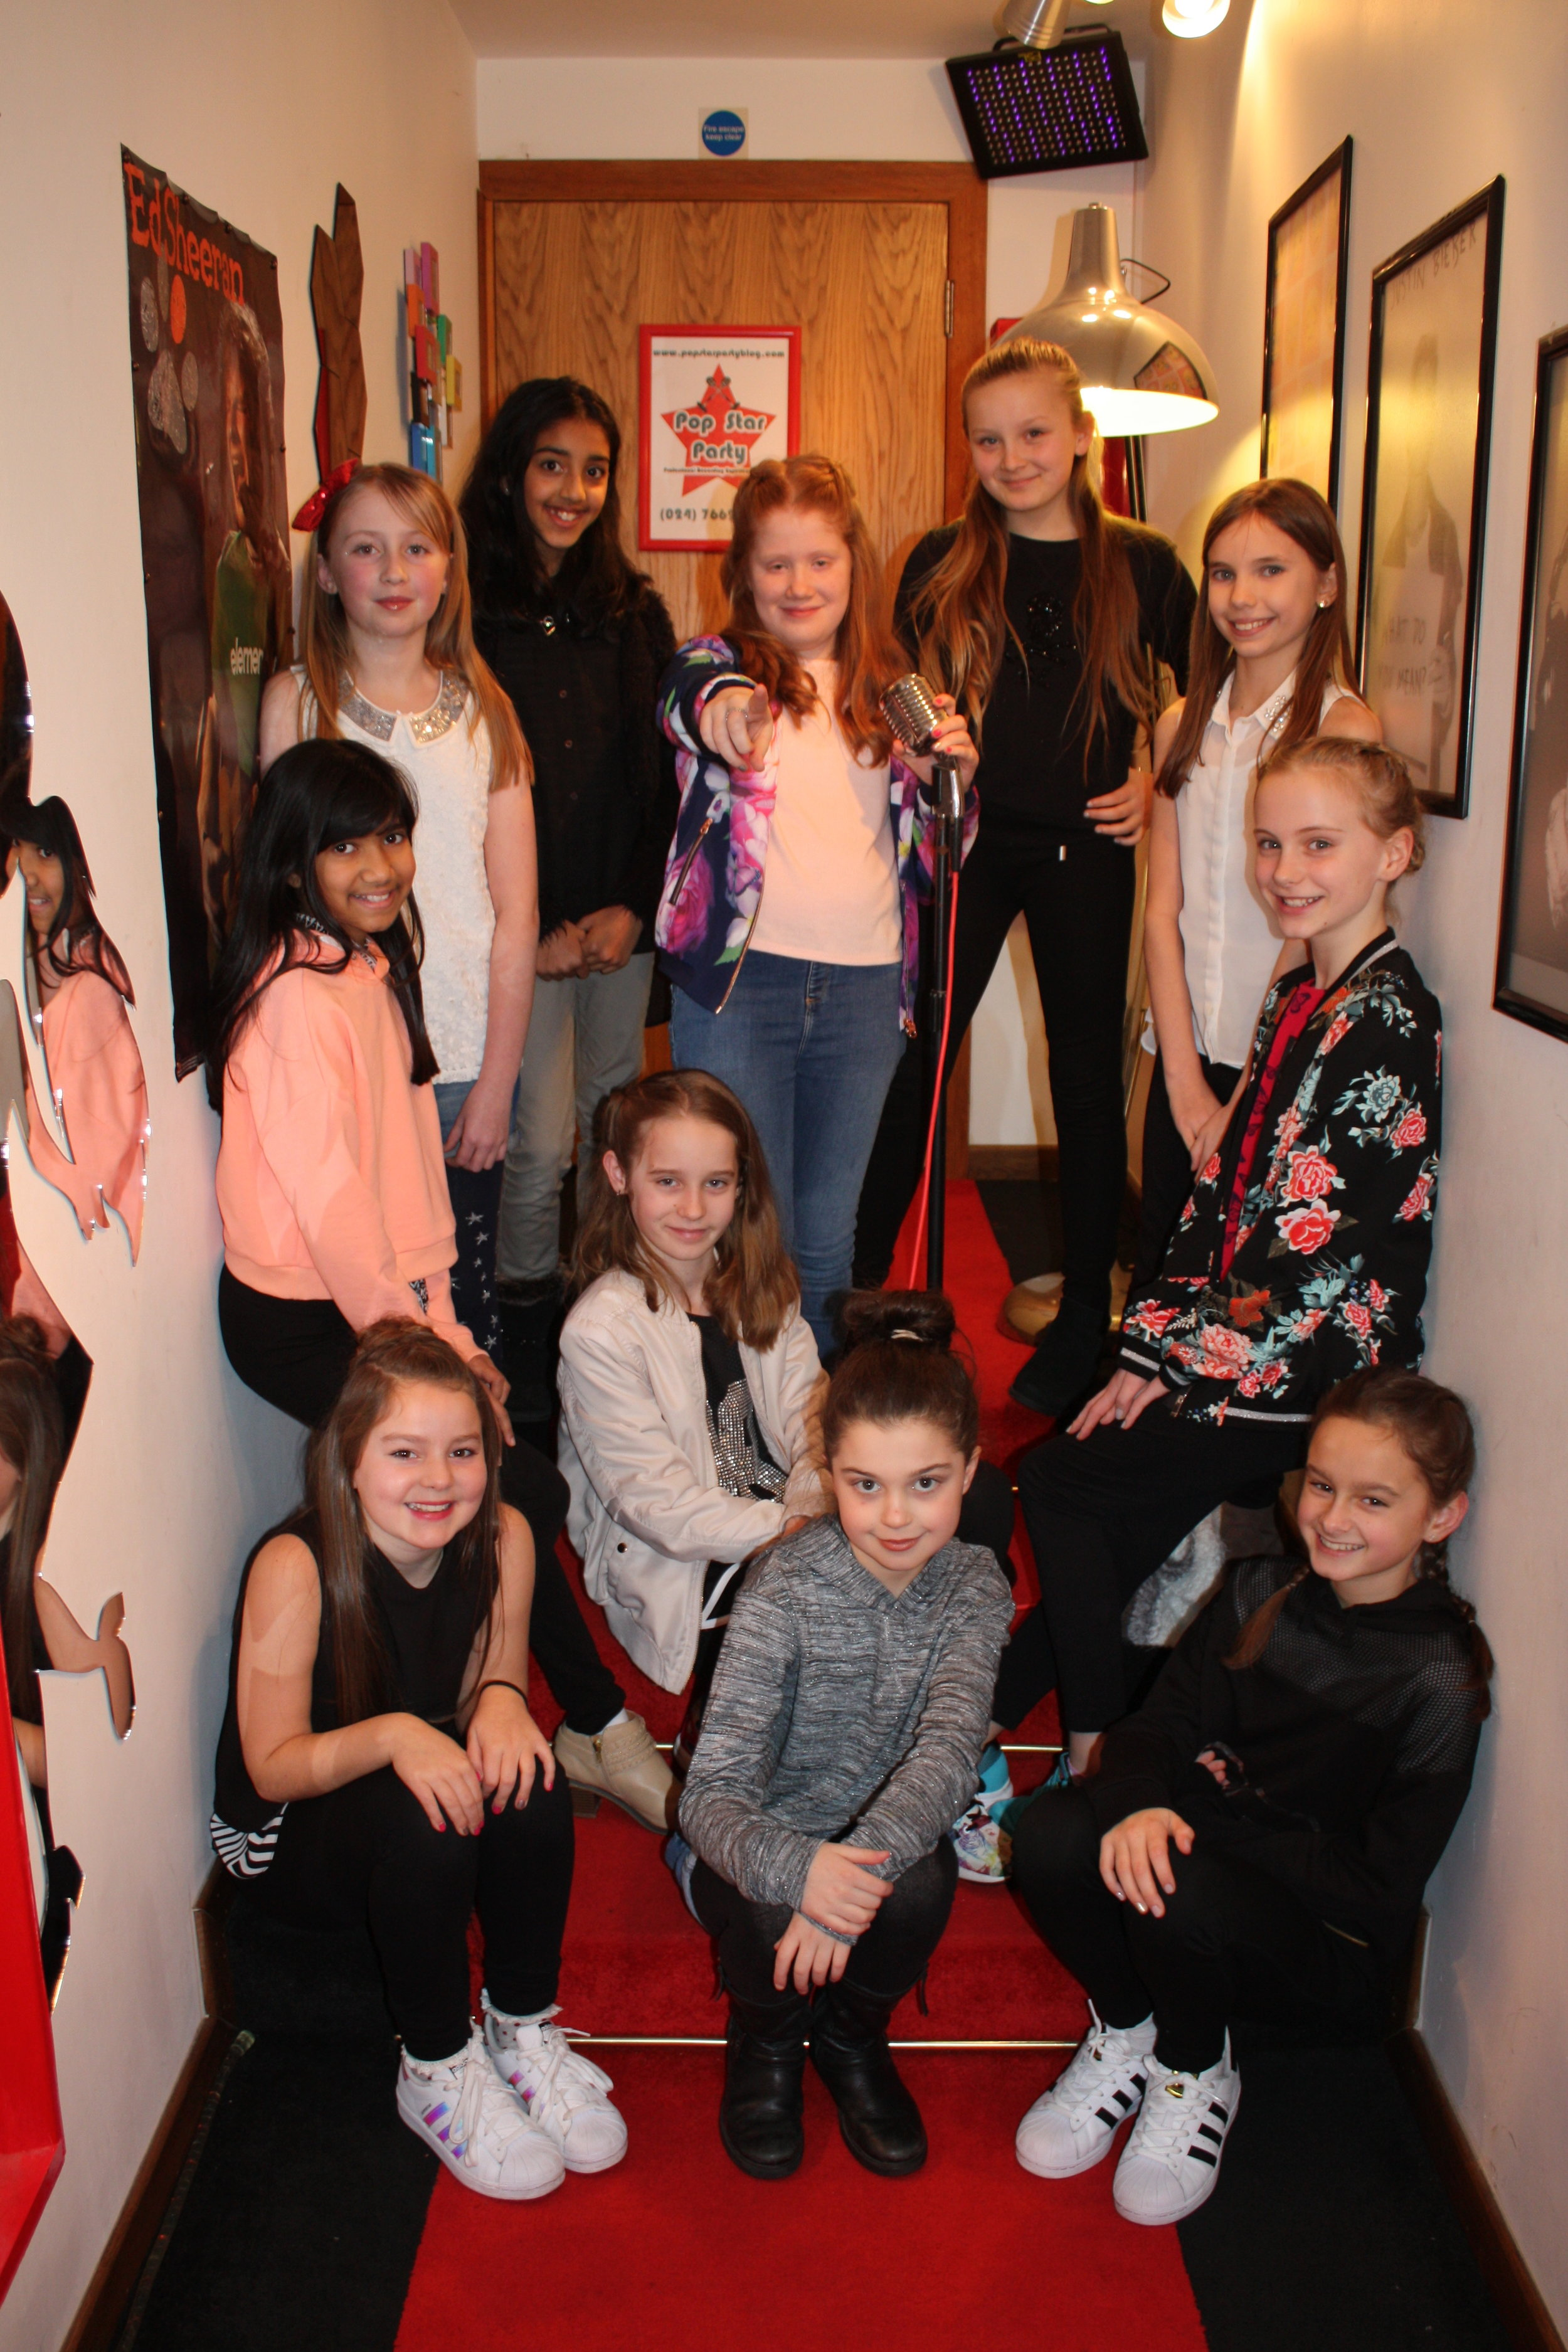 Red Carpet Photoshoot at Pop Star Party